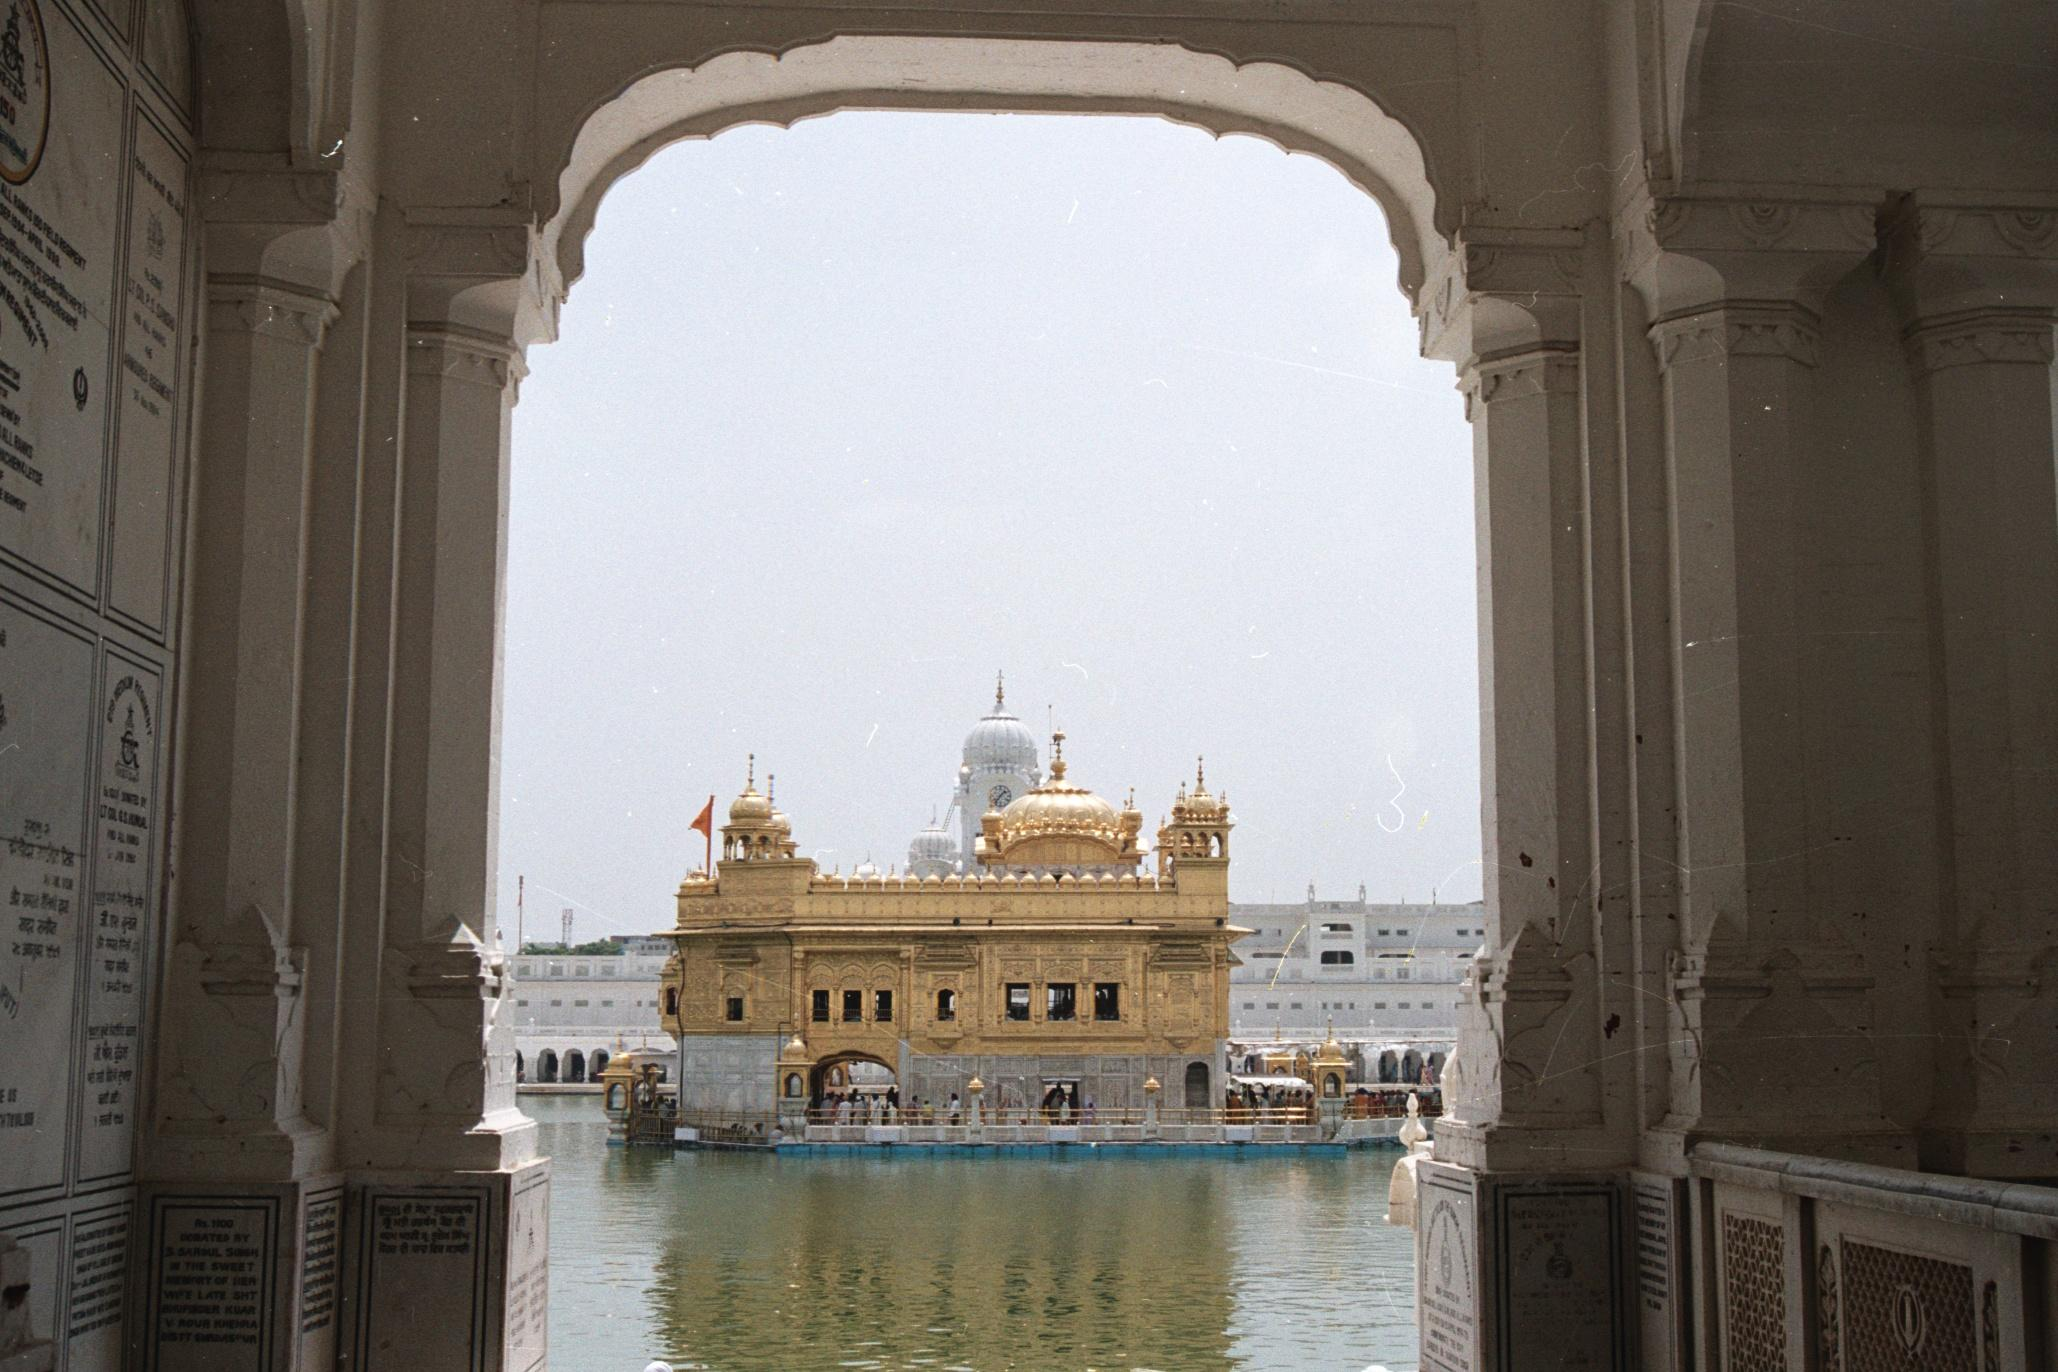 essay on golden temple photo essay golden week in hamandir sahib golden temple jpg photo essay golden week in hamandir sahib golden temple jpg